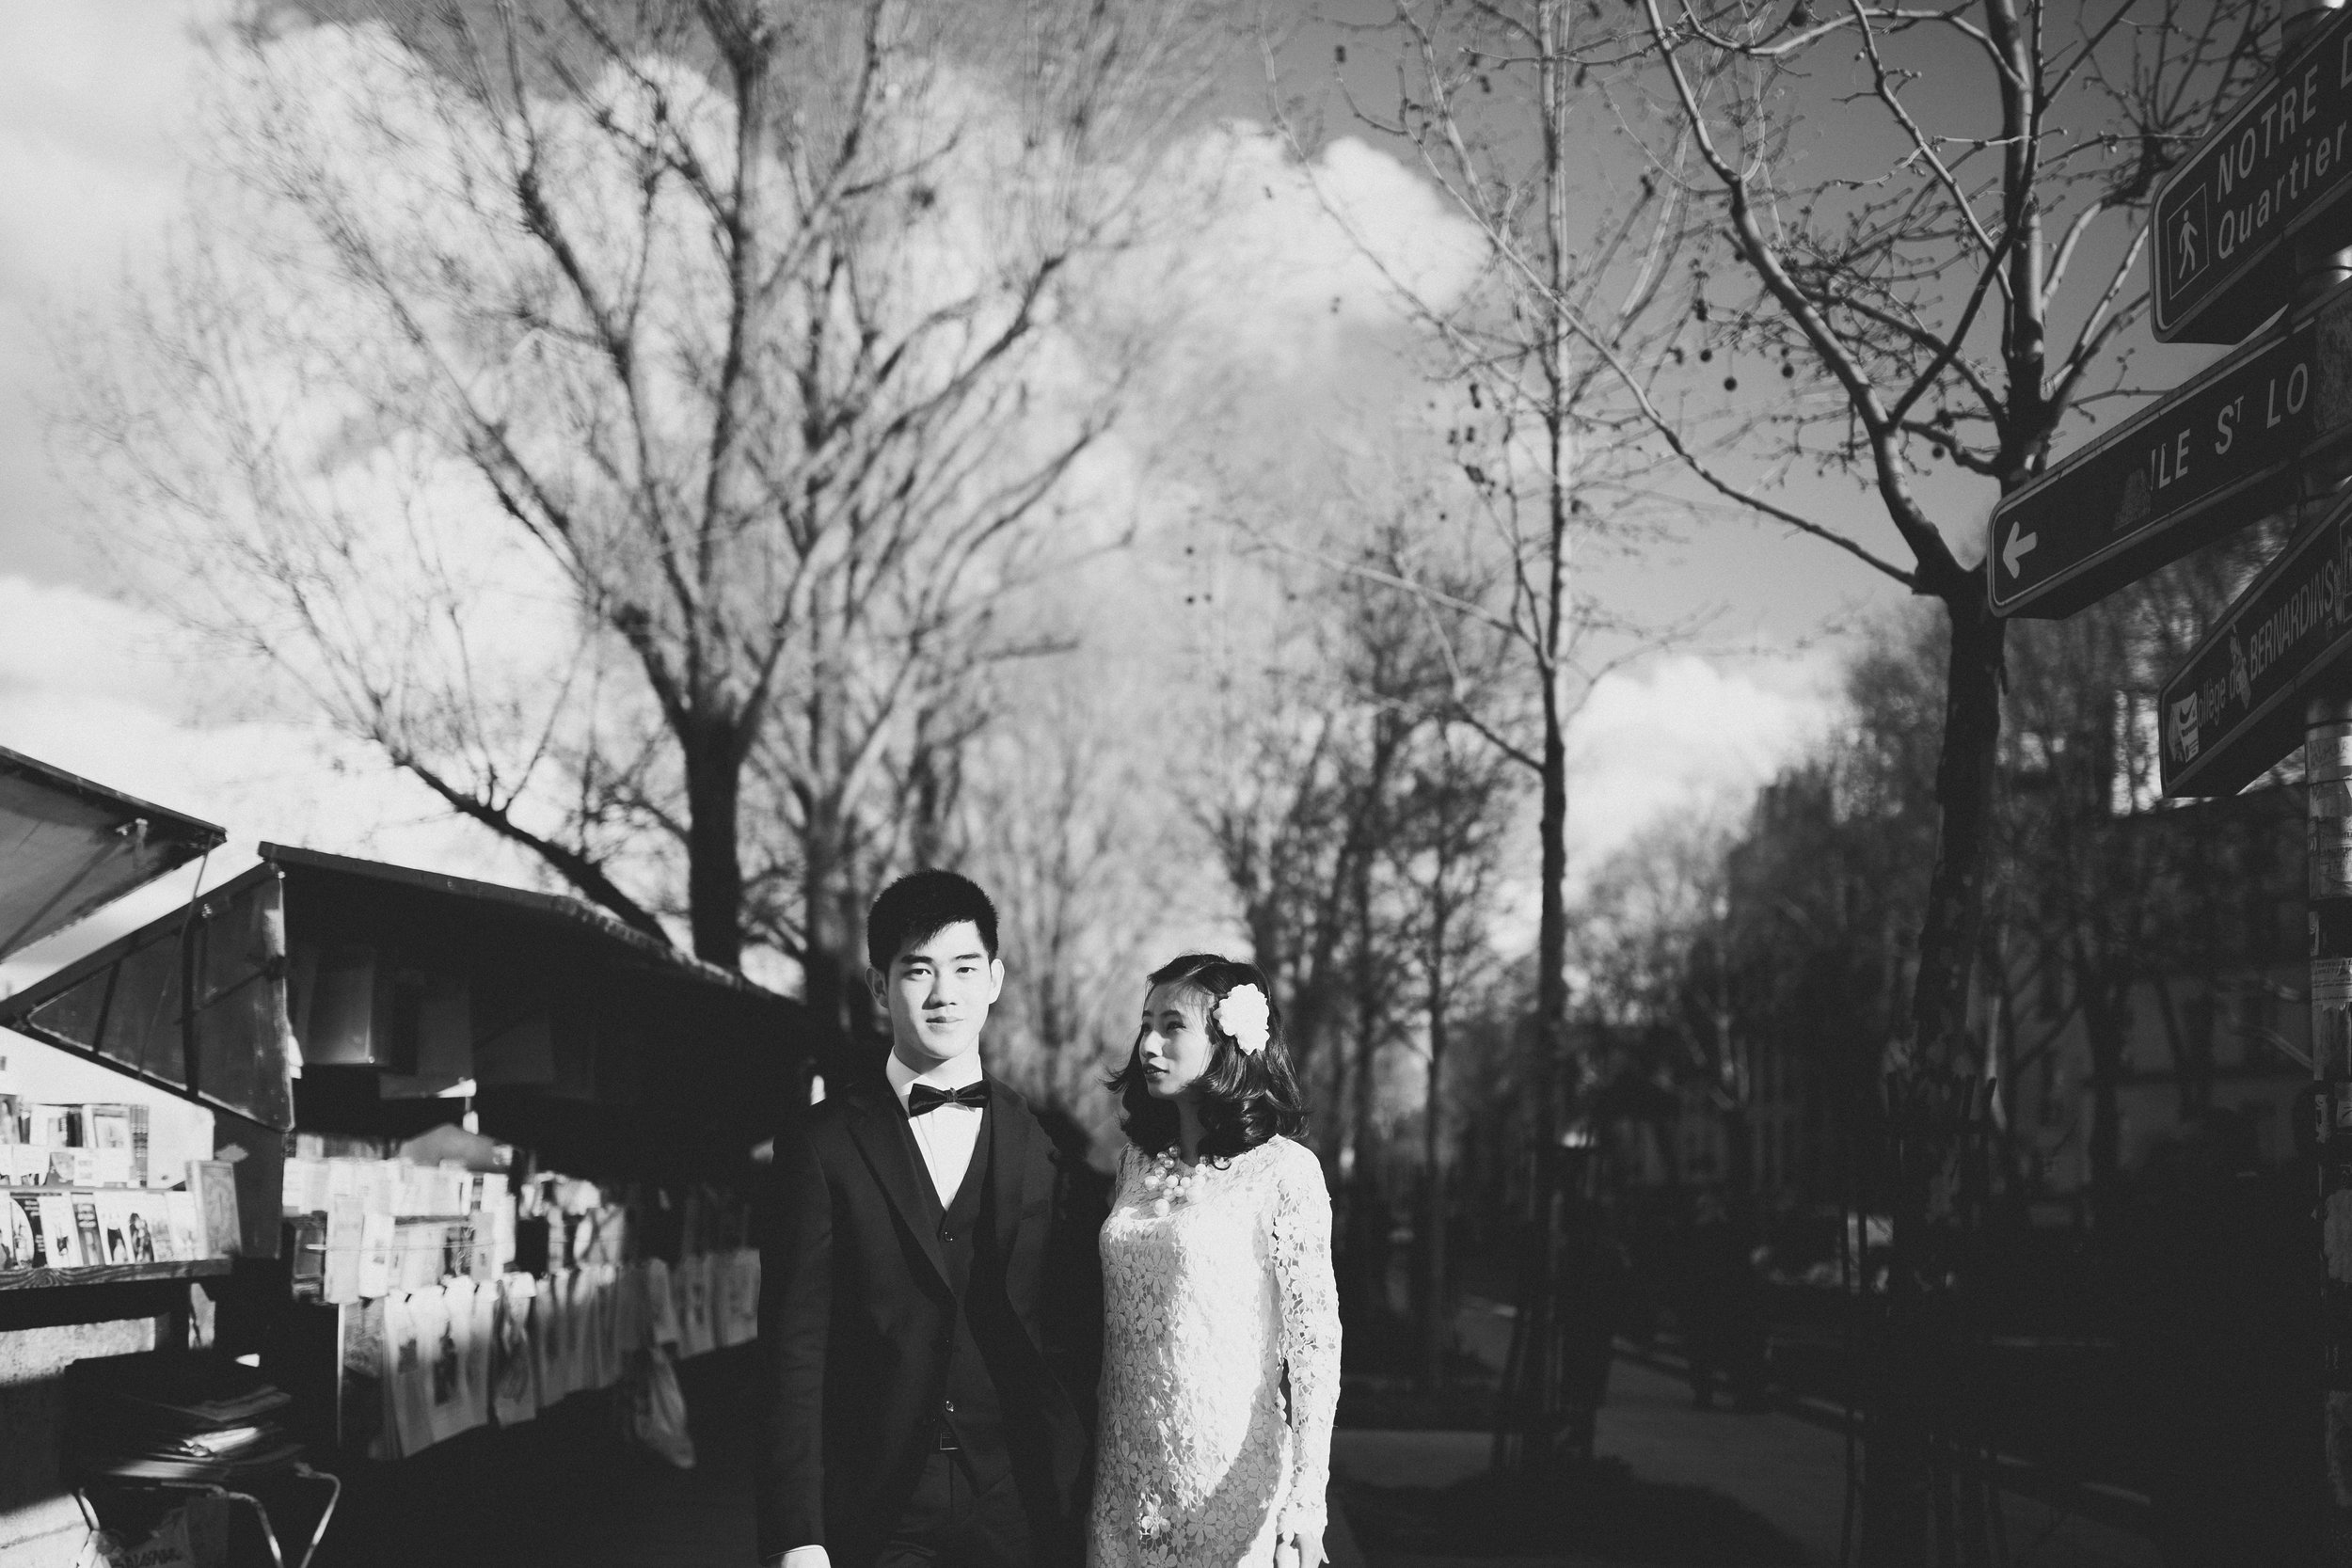 Séance pre-wedding - Willy & Tuyen-2131.jpg